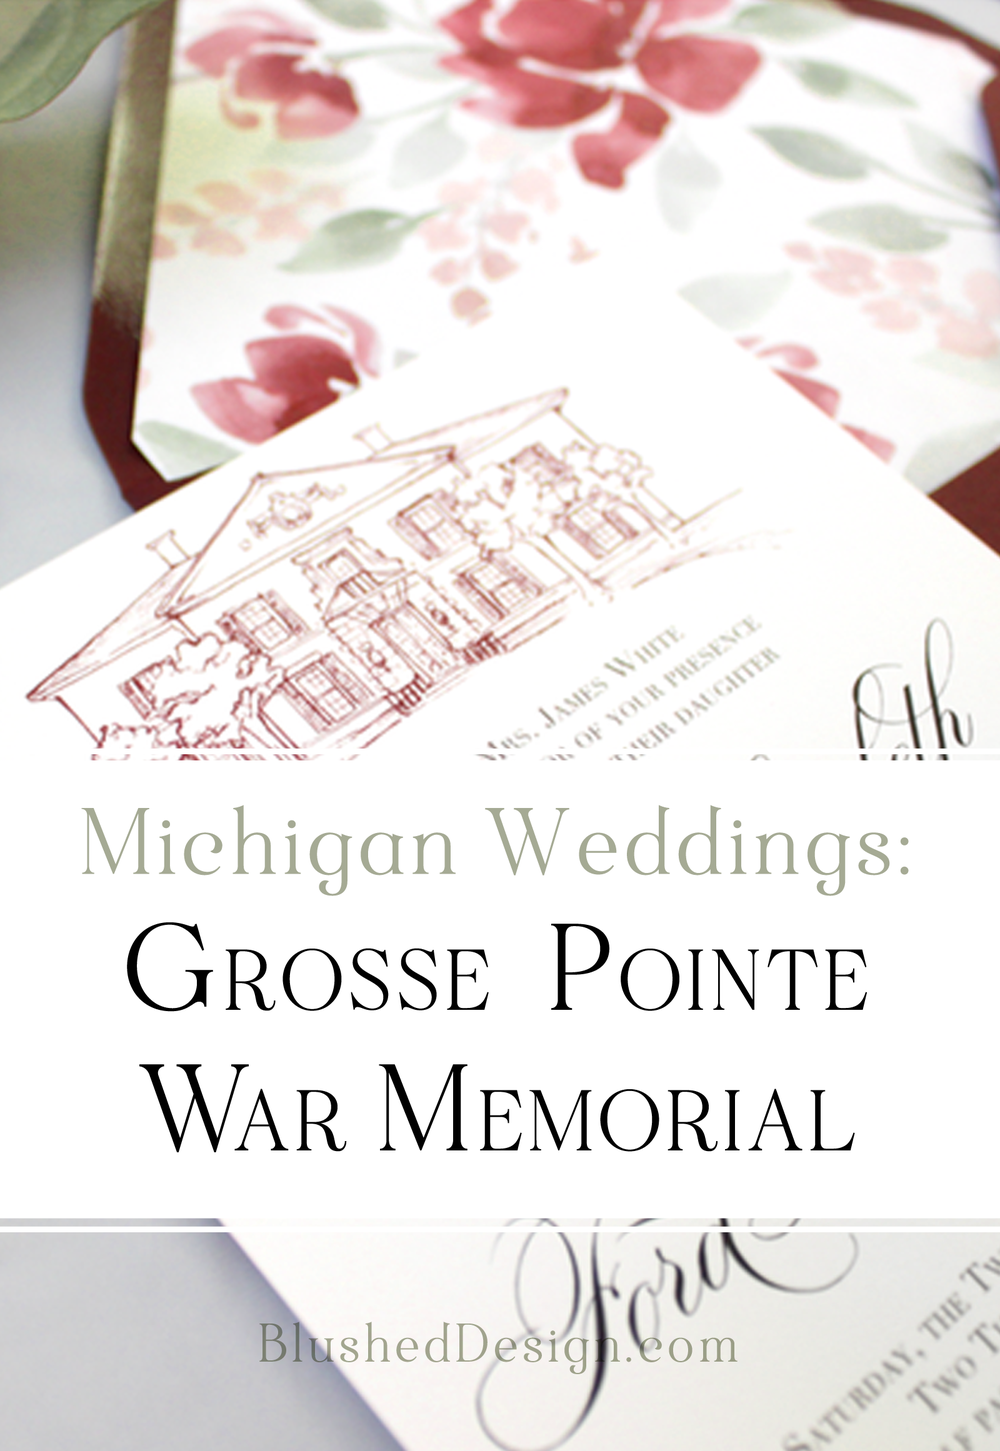 Michigan Wedding Venues : Grosse Pointe War Memorial | Blushed Design, Wedding Invitations and Fine Art Portraits